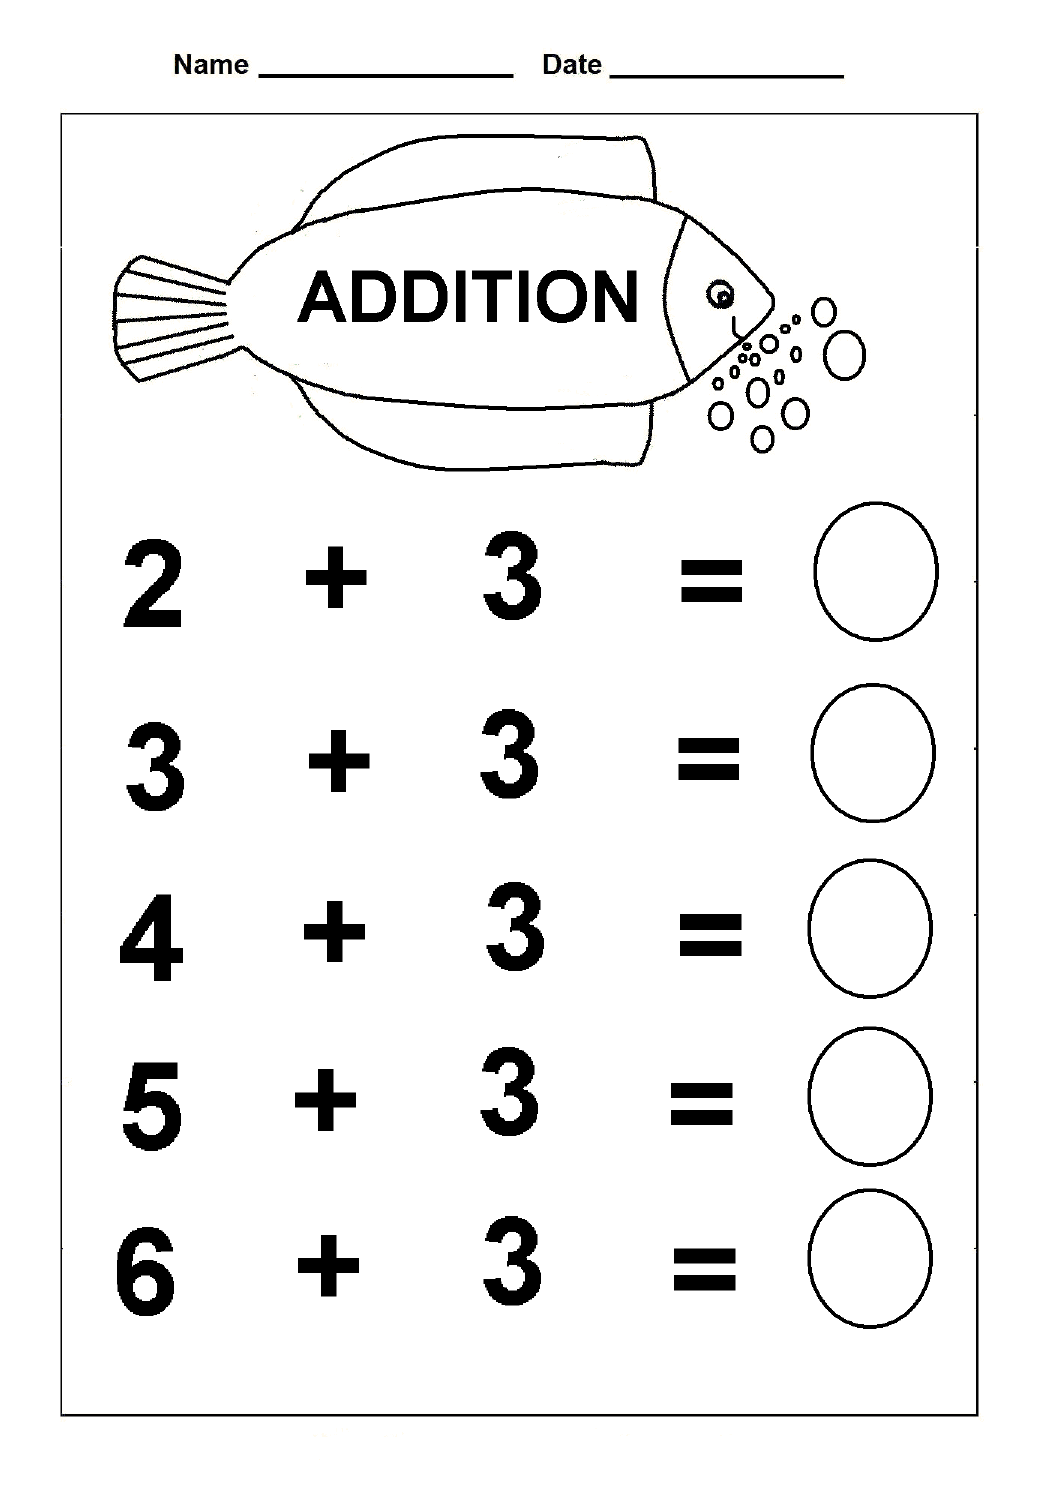 Kindergarten Easy Worksheets : Free printable kindergarten math worksheets